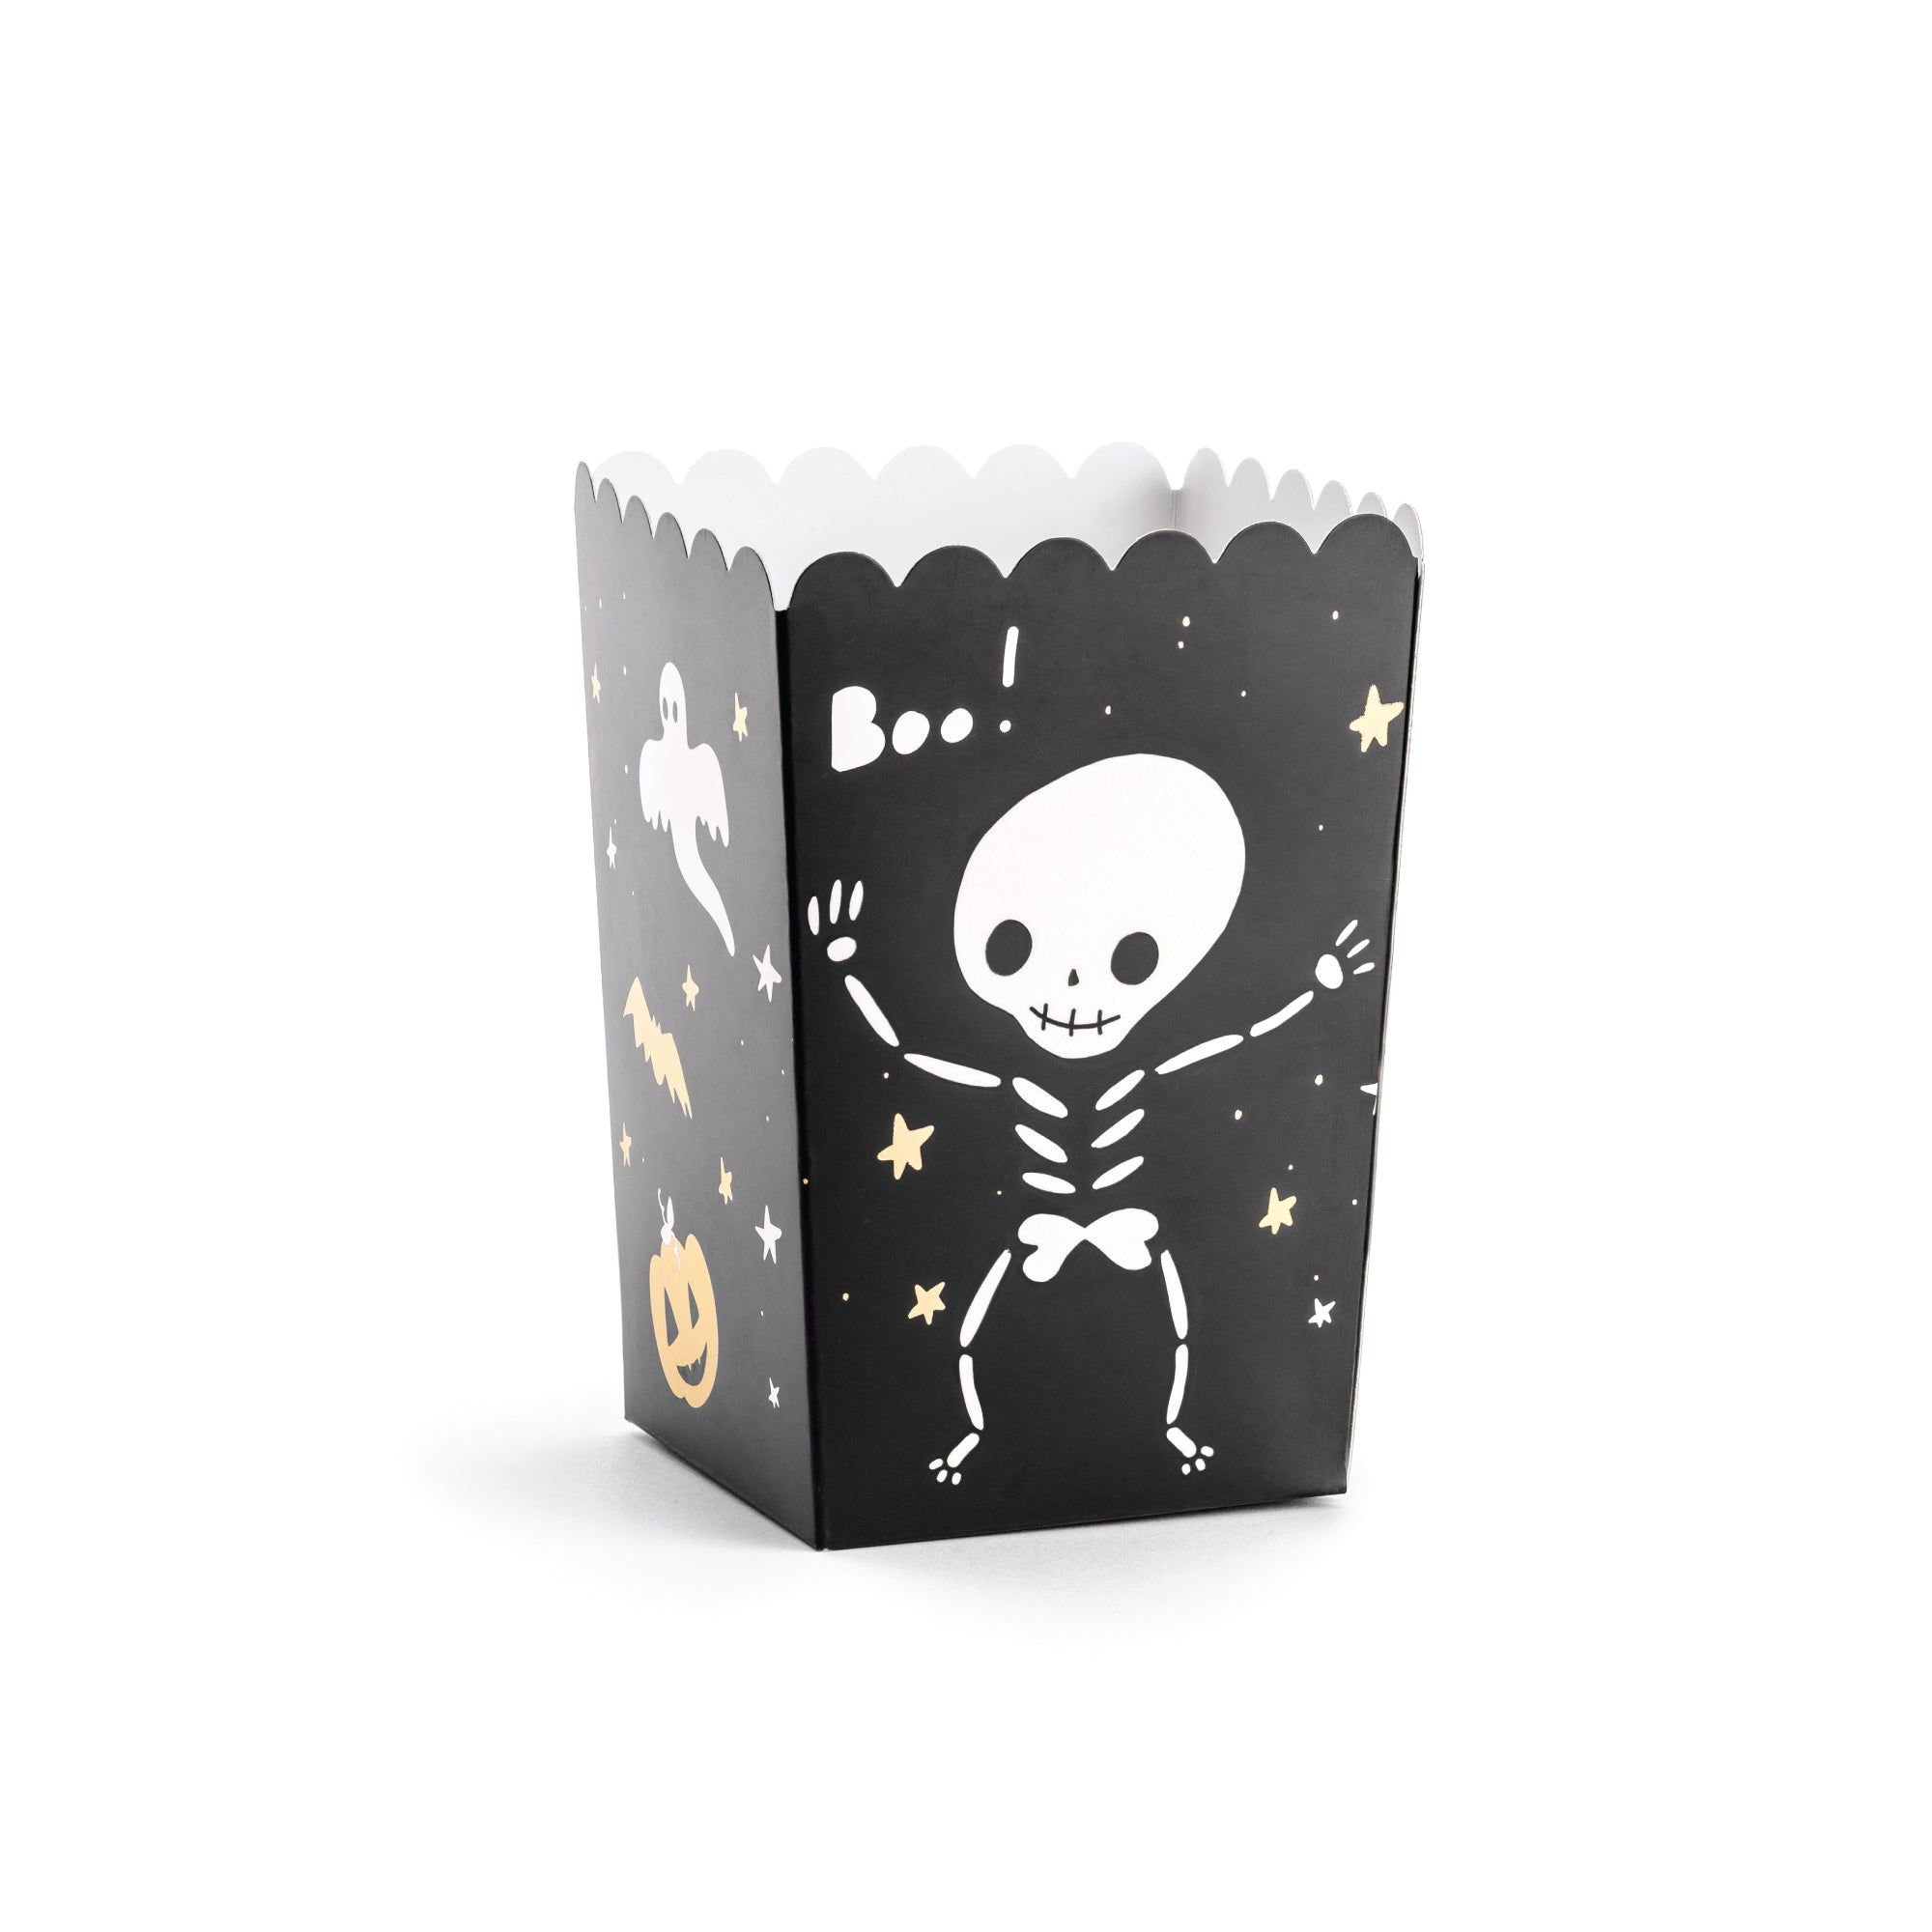 Black Halloween BOO Popcorn Boxes  Edit alt text